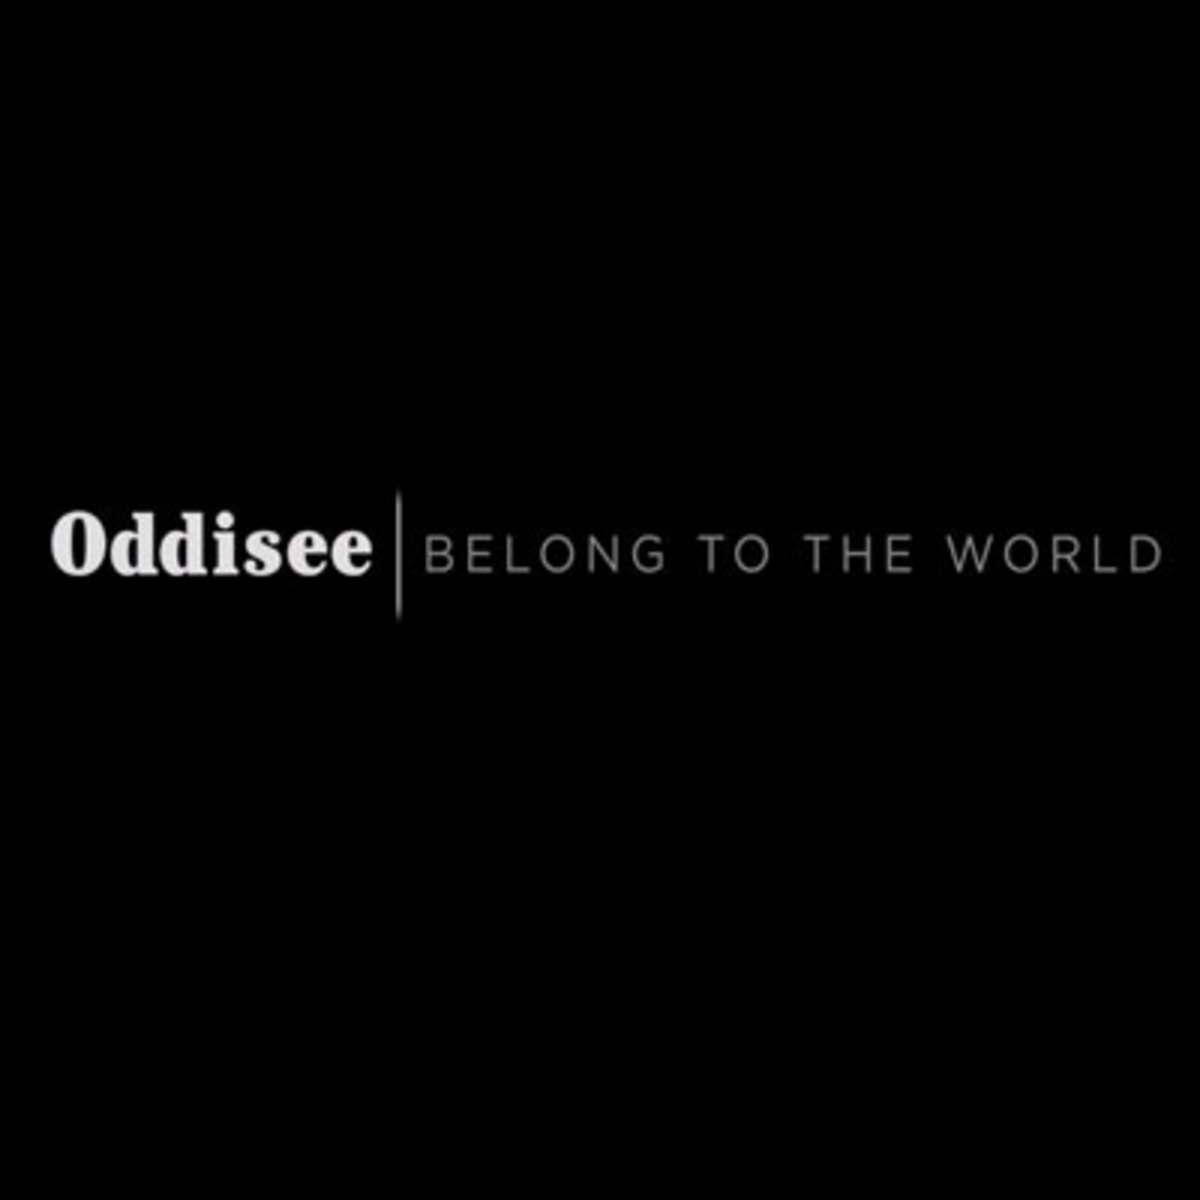 oddisee-belong-to-the-world.jpg